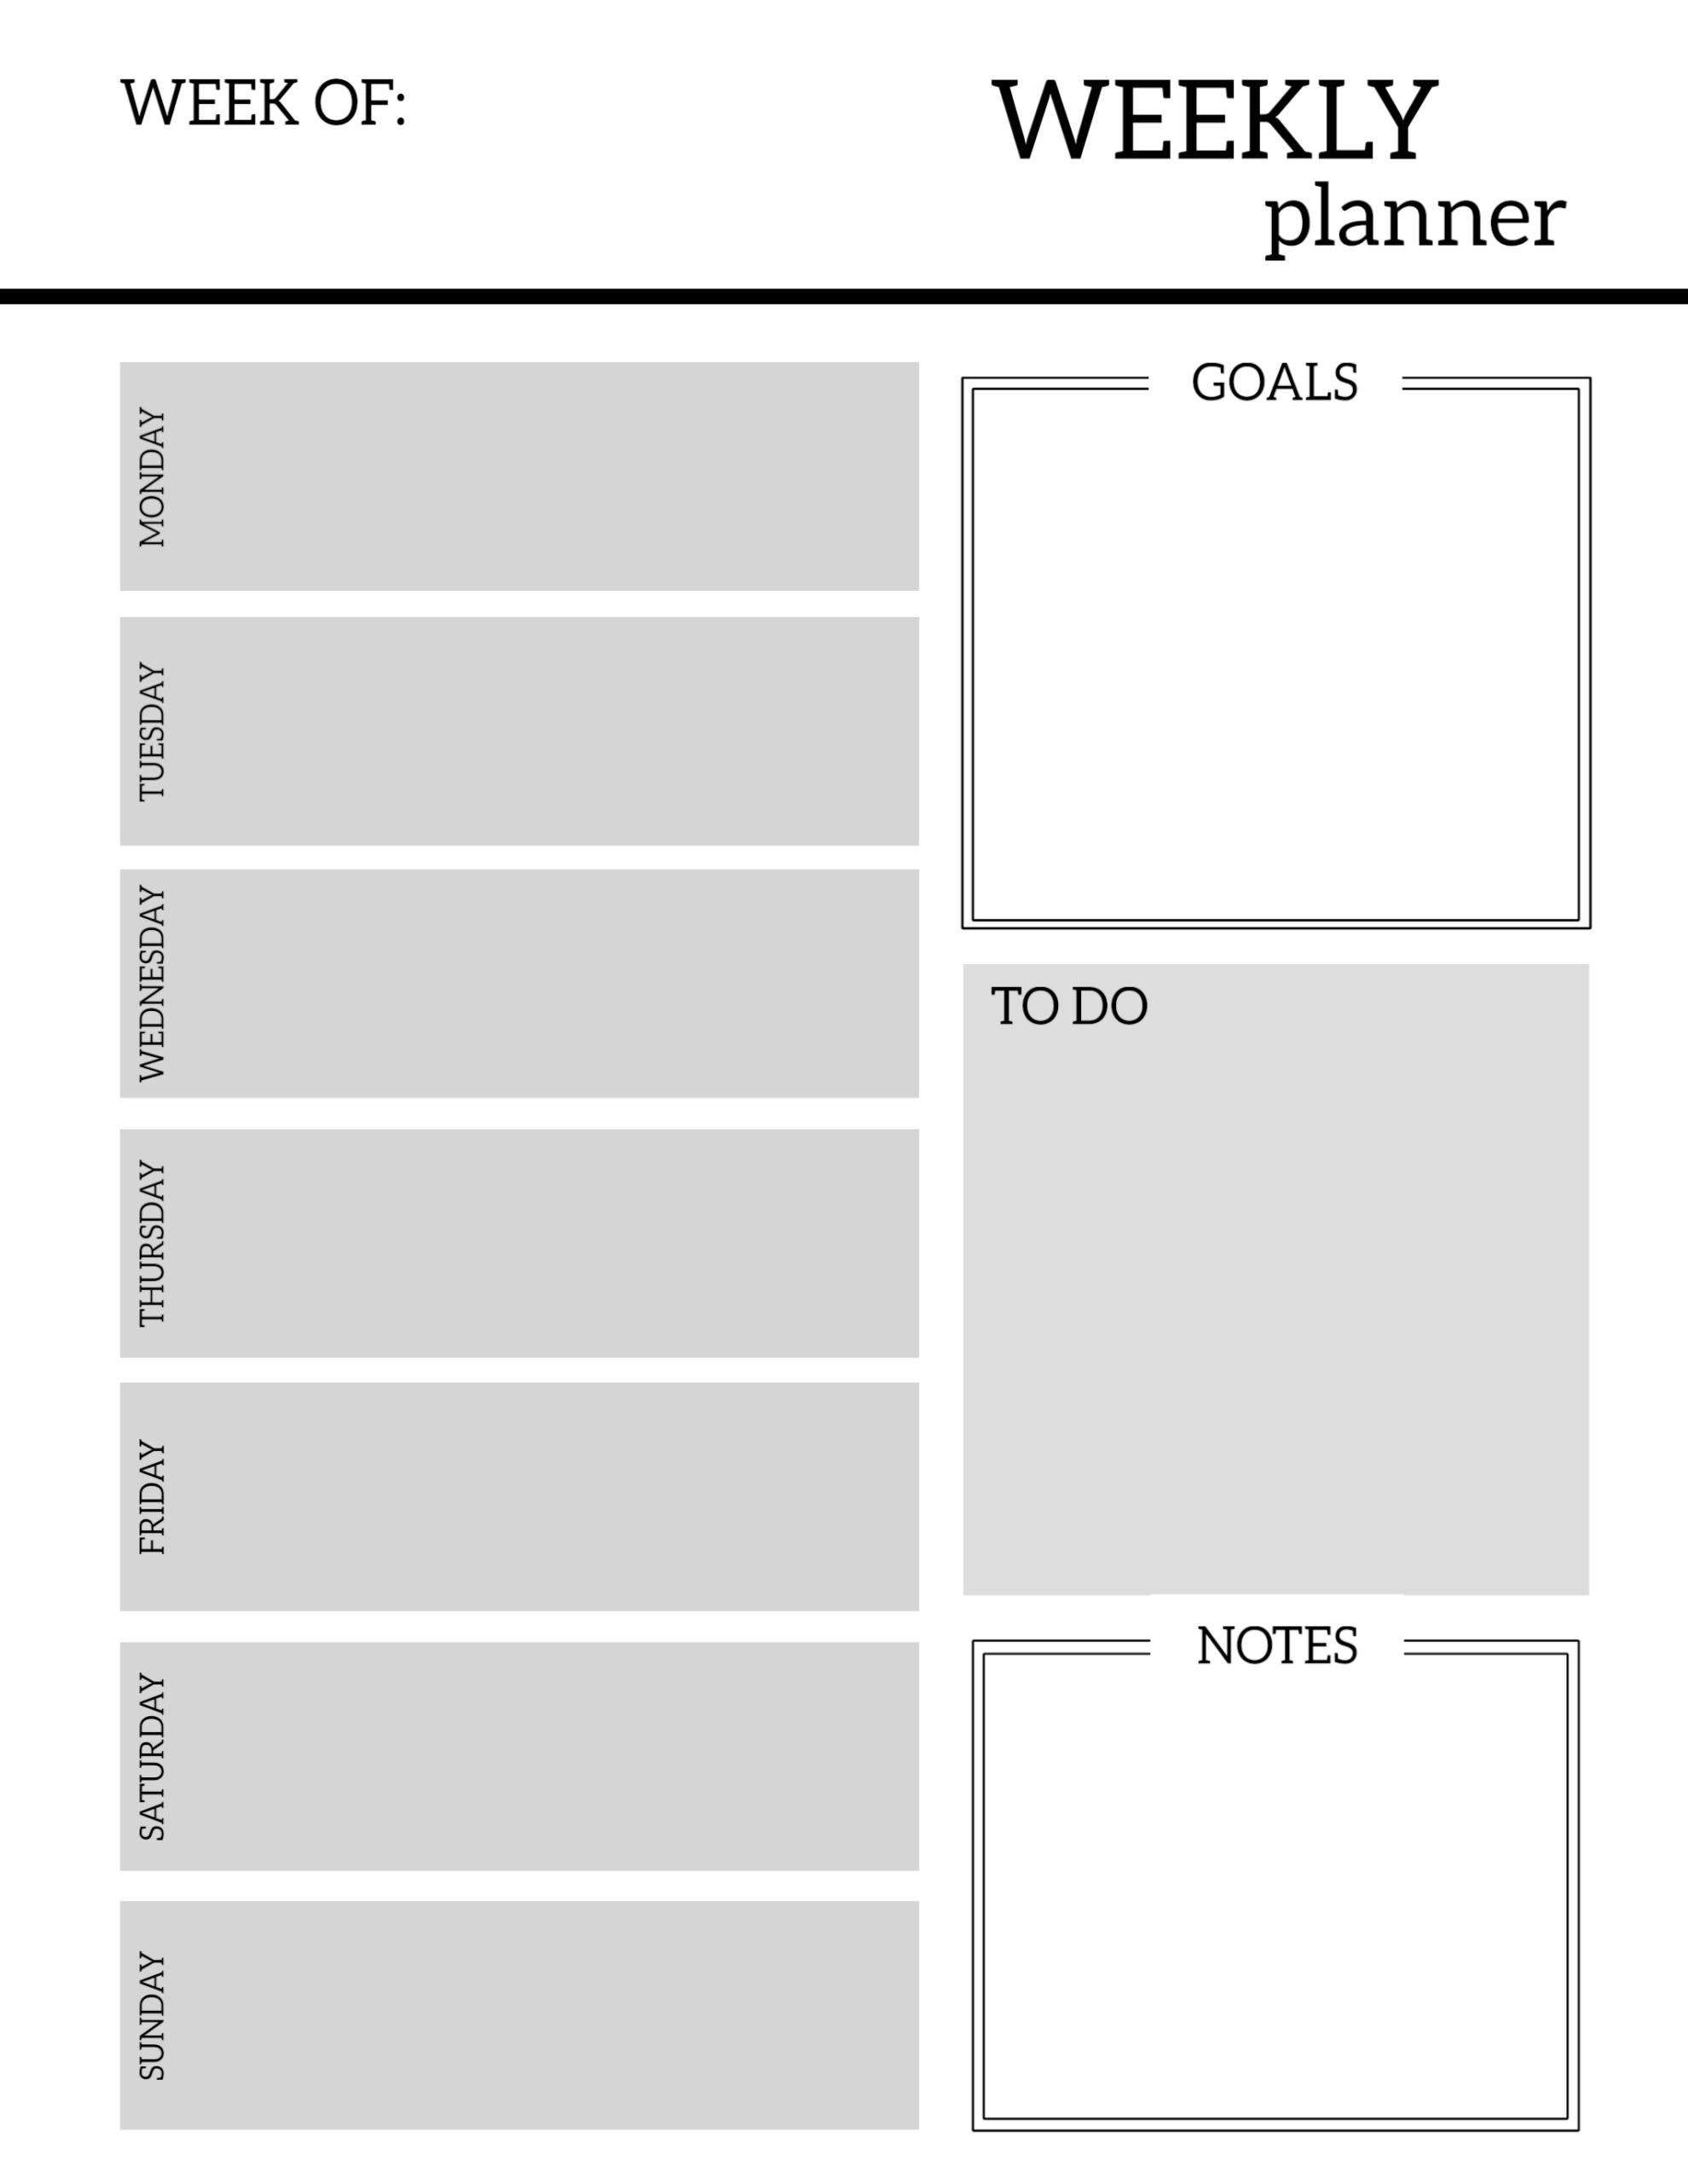 graphic about Week Planner Printable called No cost Printable Weekly Planner Webpages - Paper Path Layout